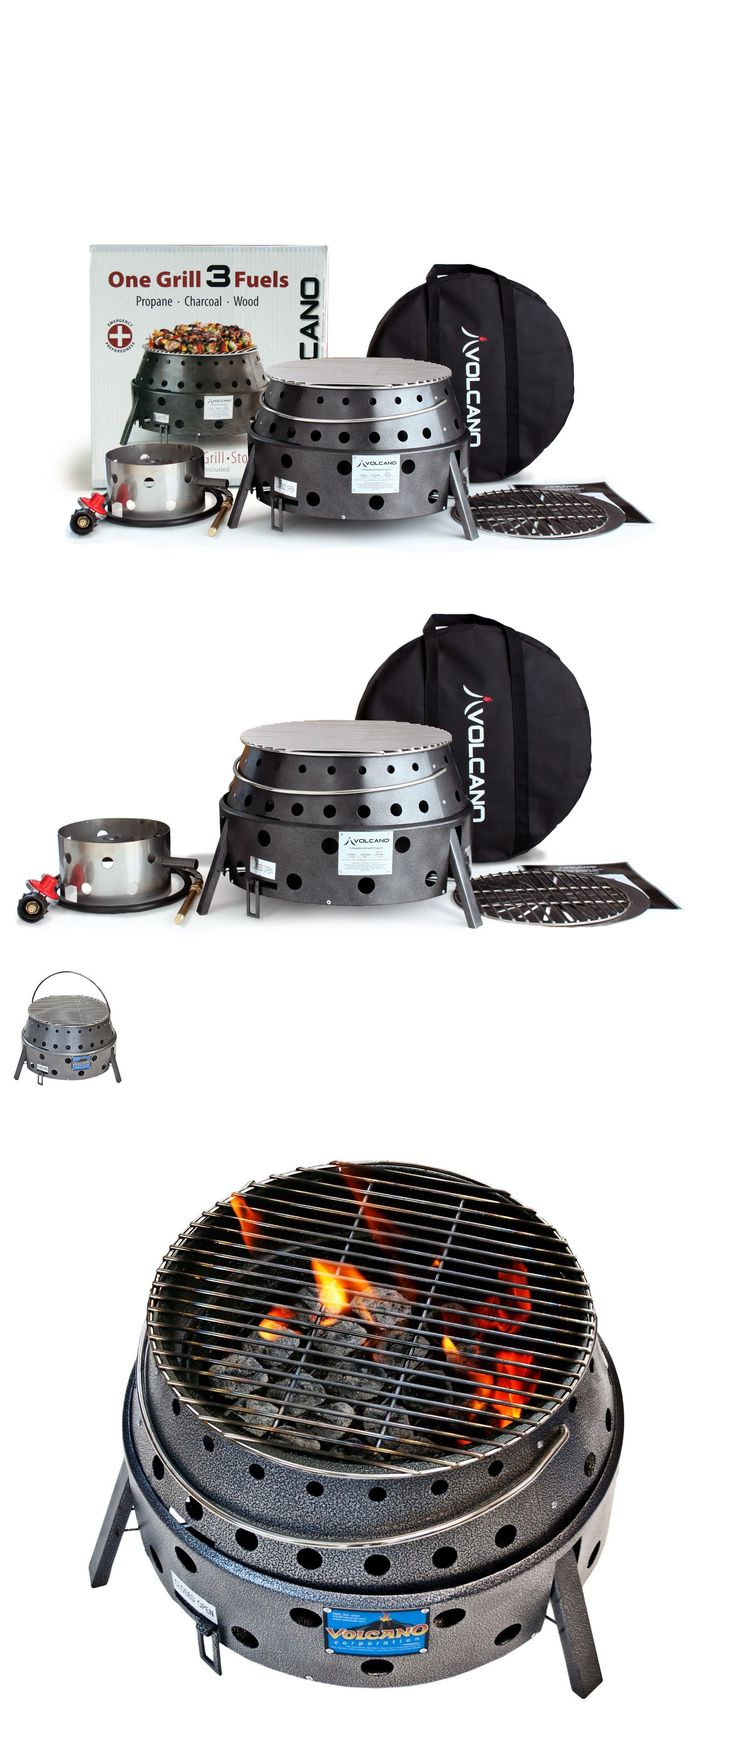 Camping BBQs and Grills 181388: Volcano Grills 3 Fuel Portable Tailgate Propane Charcoal Camp Stove Tabletop -> BUY IT NOW ONLY: $149.99 on eBay!